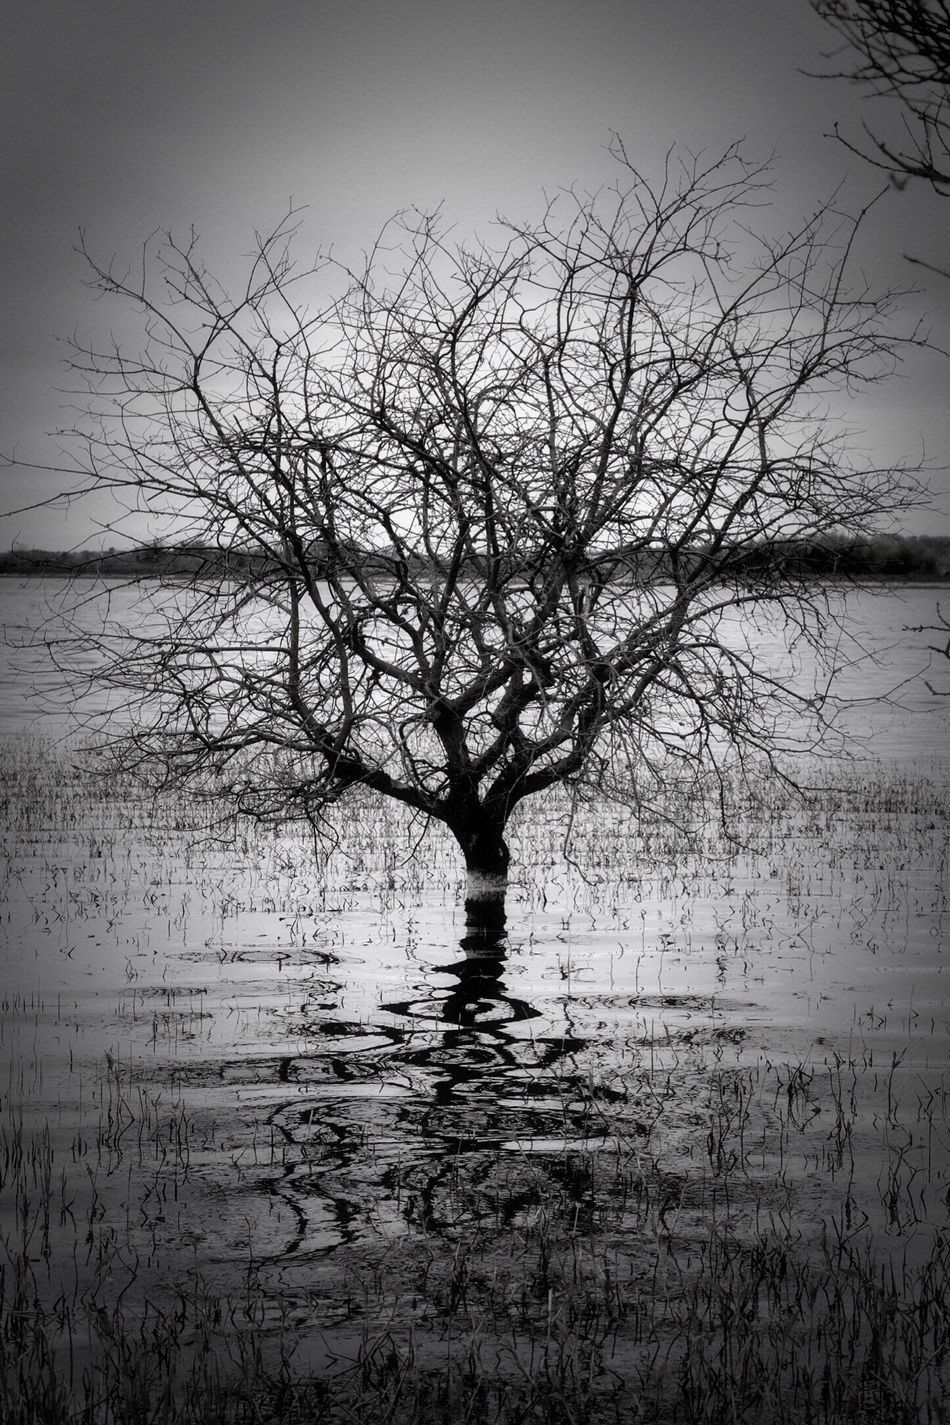 Tree Bare Tree Tranquility Beauty In Nature Reflection Lake Scenics Outdoors Landscape Sky Nikon Blackandwhite